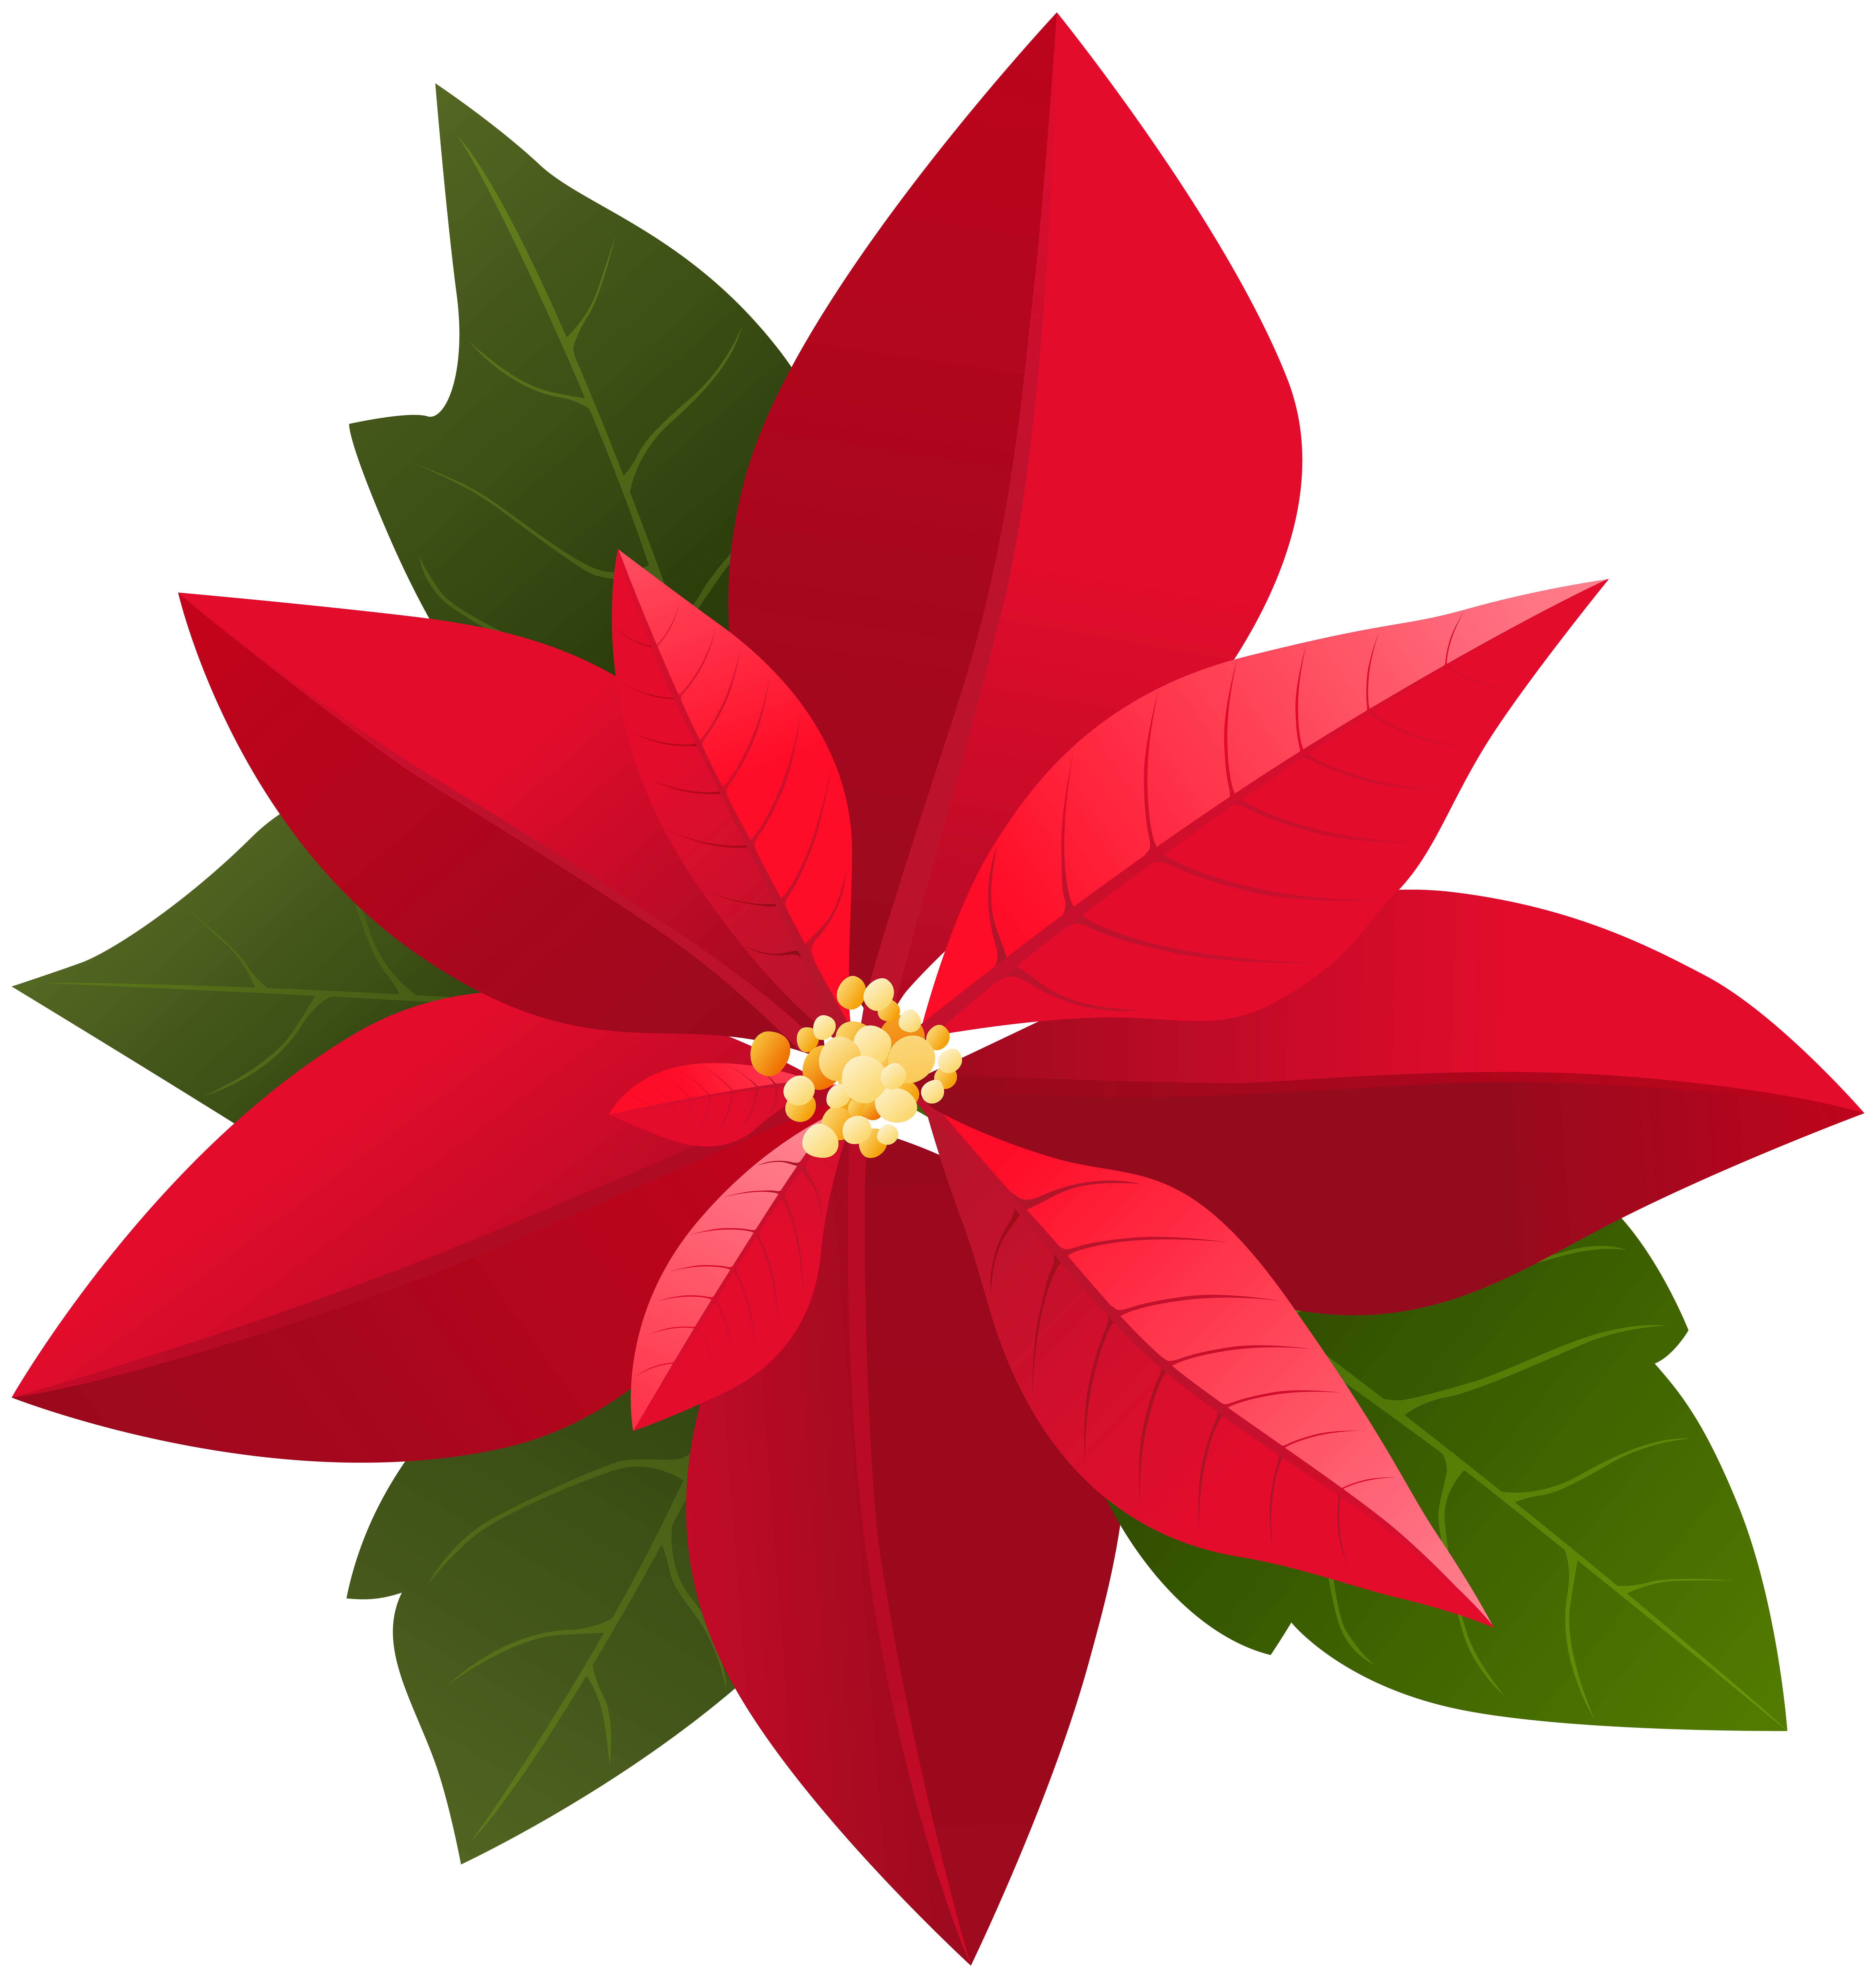 Free poinsettia clipart images. Christmas png clip art